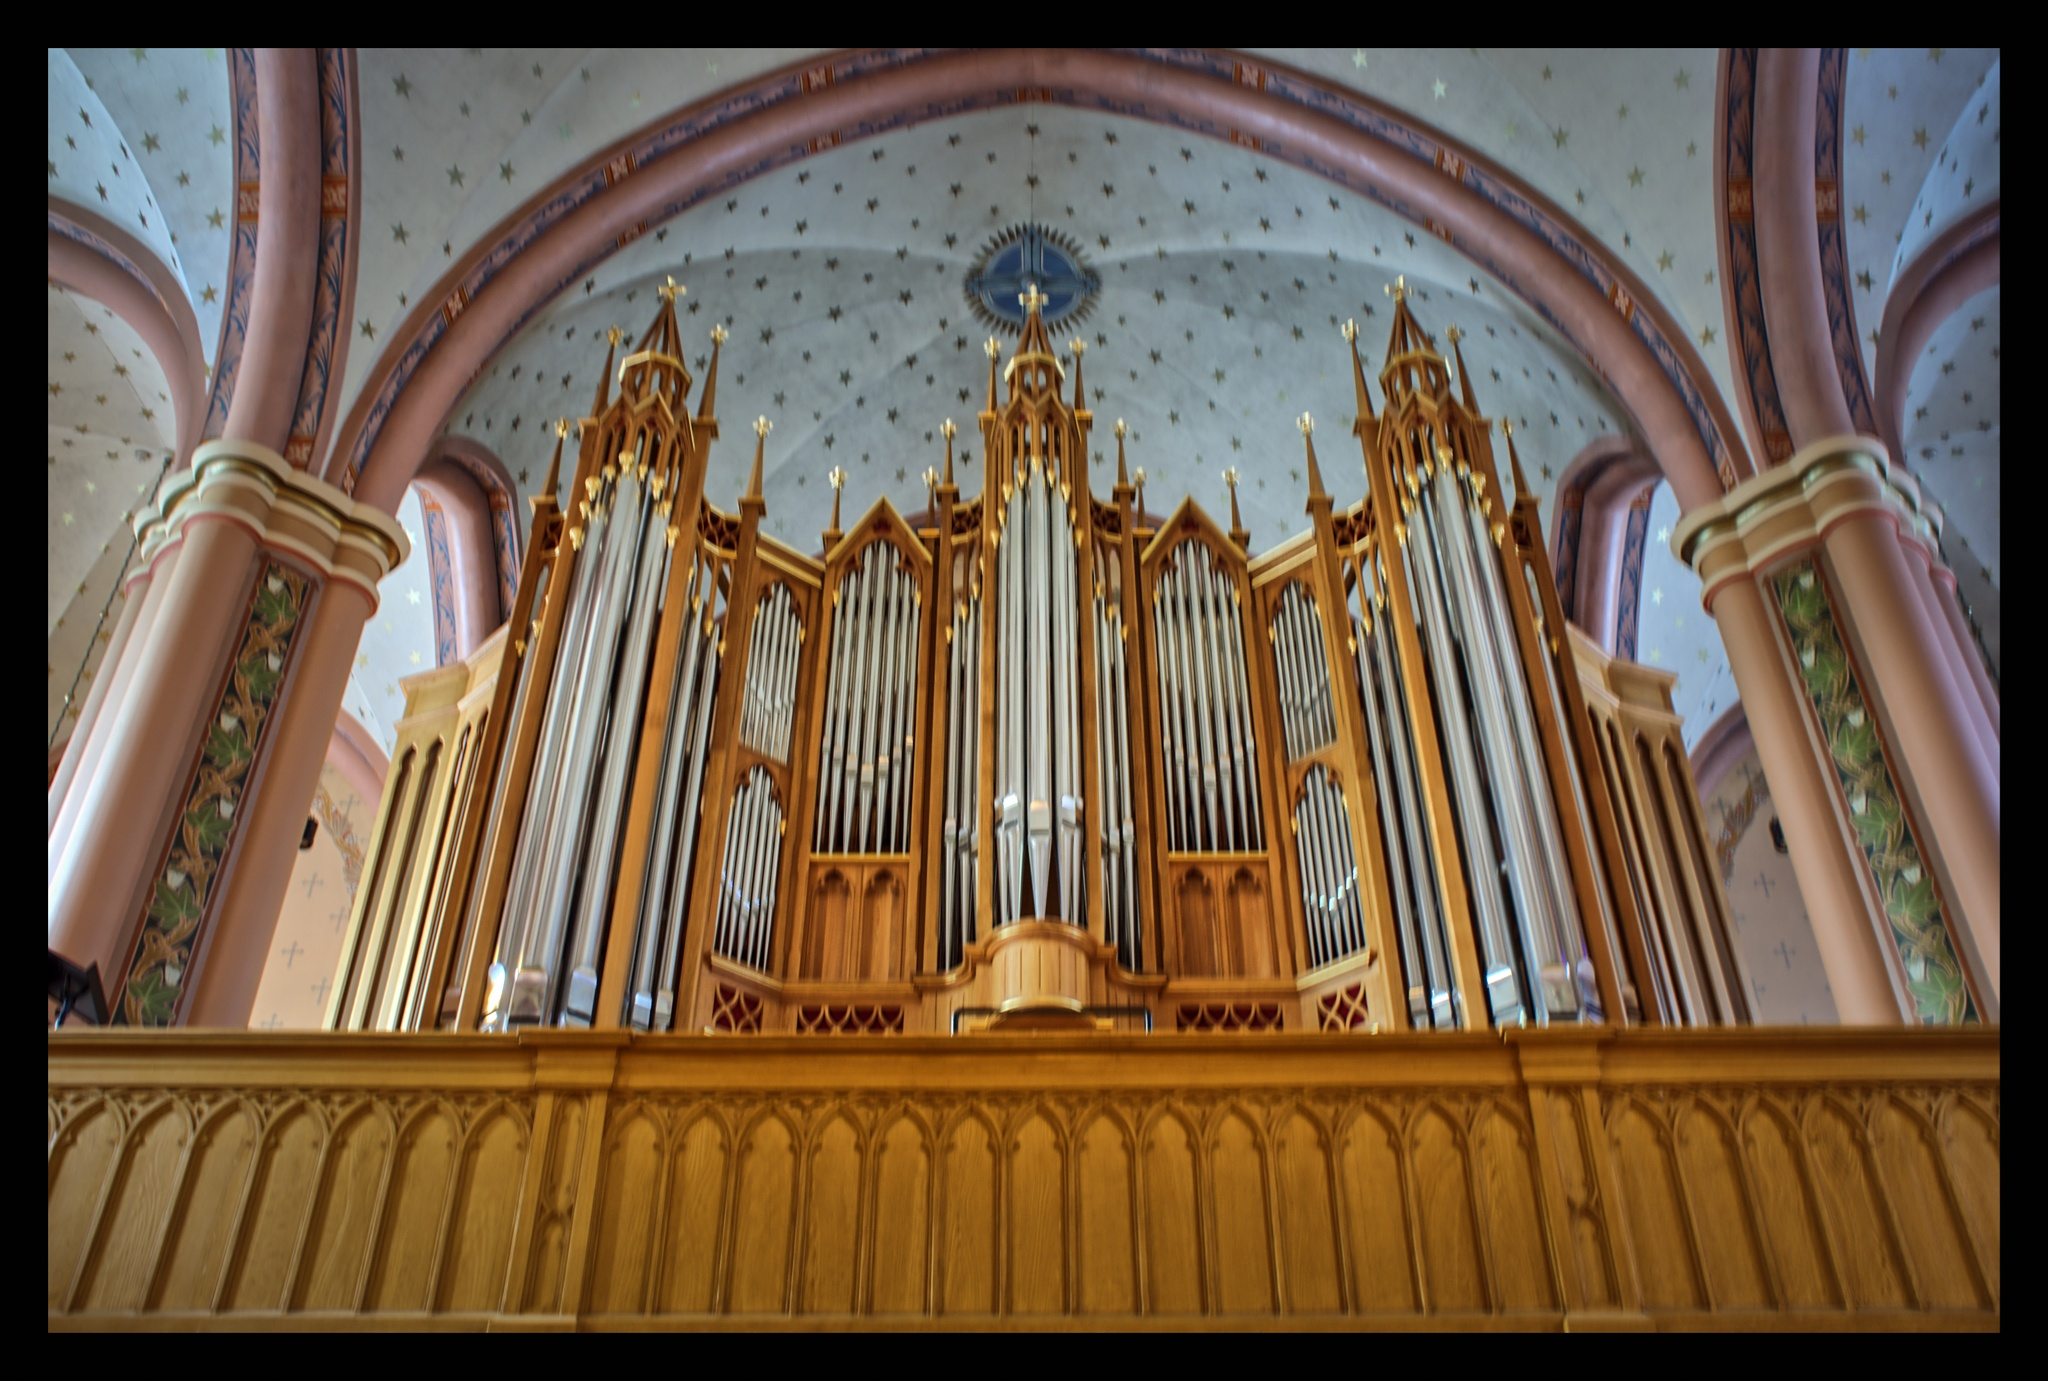 Organs of Pori Cathedral by Karographix